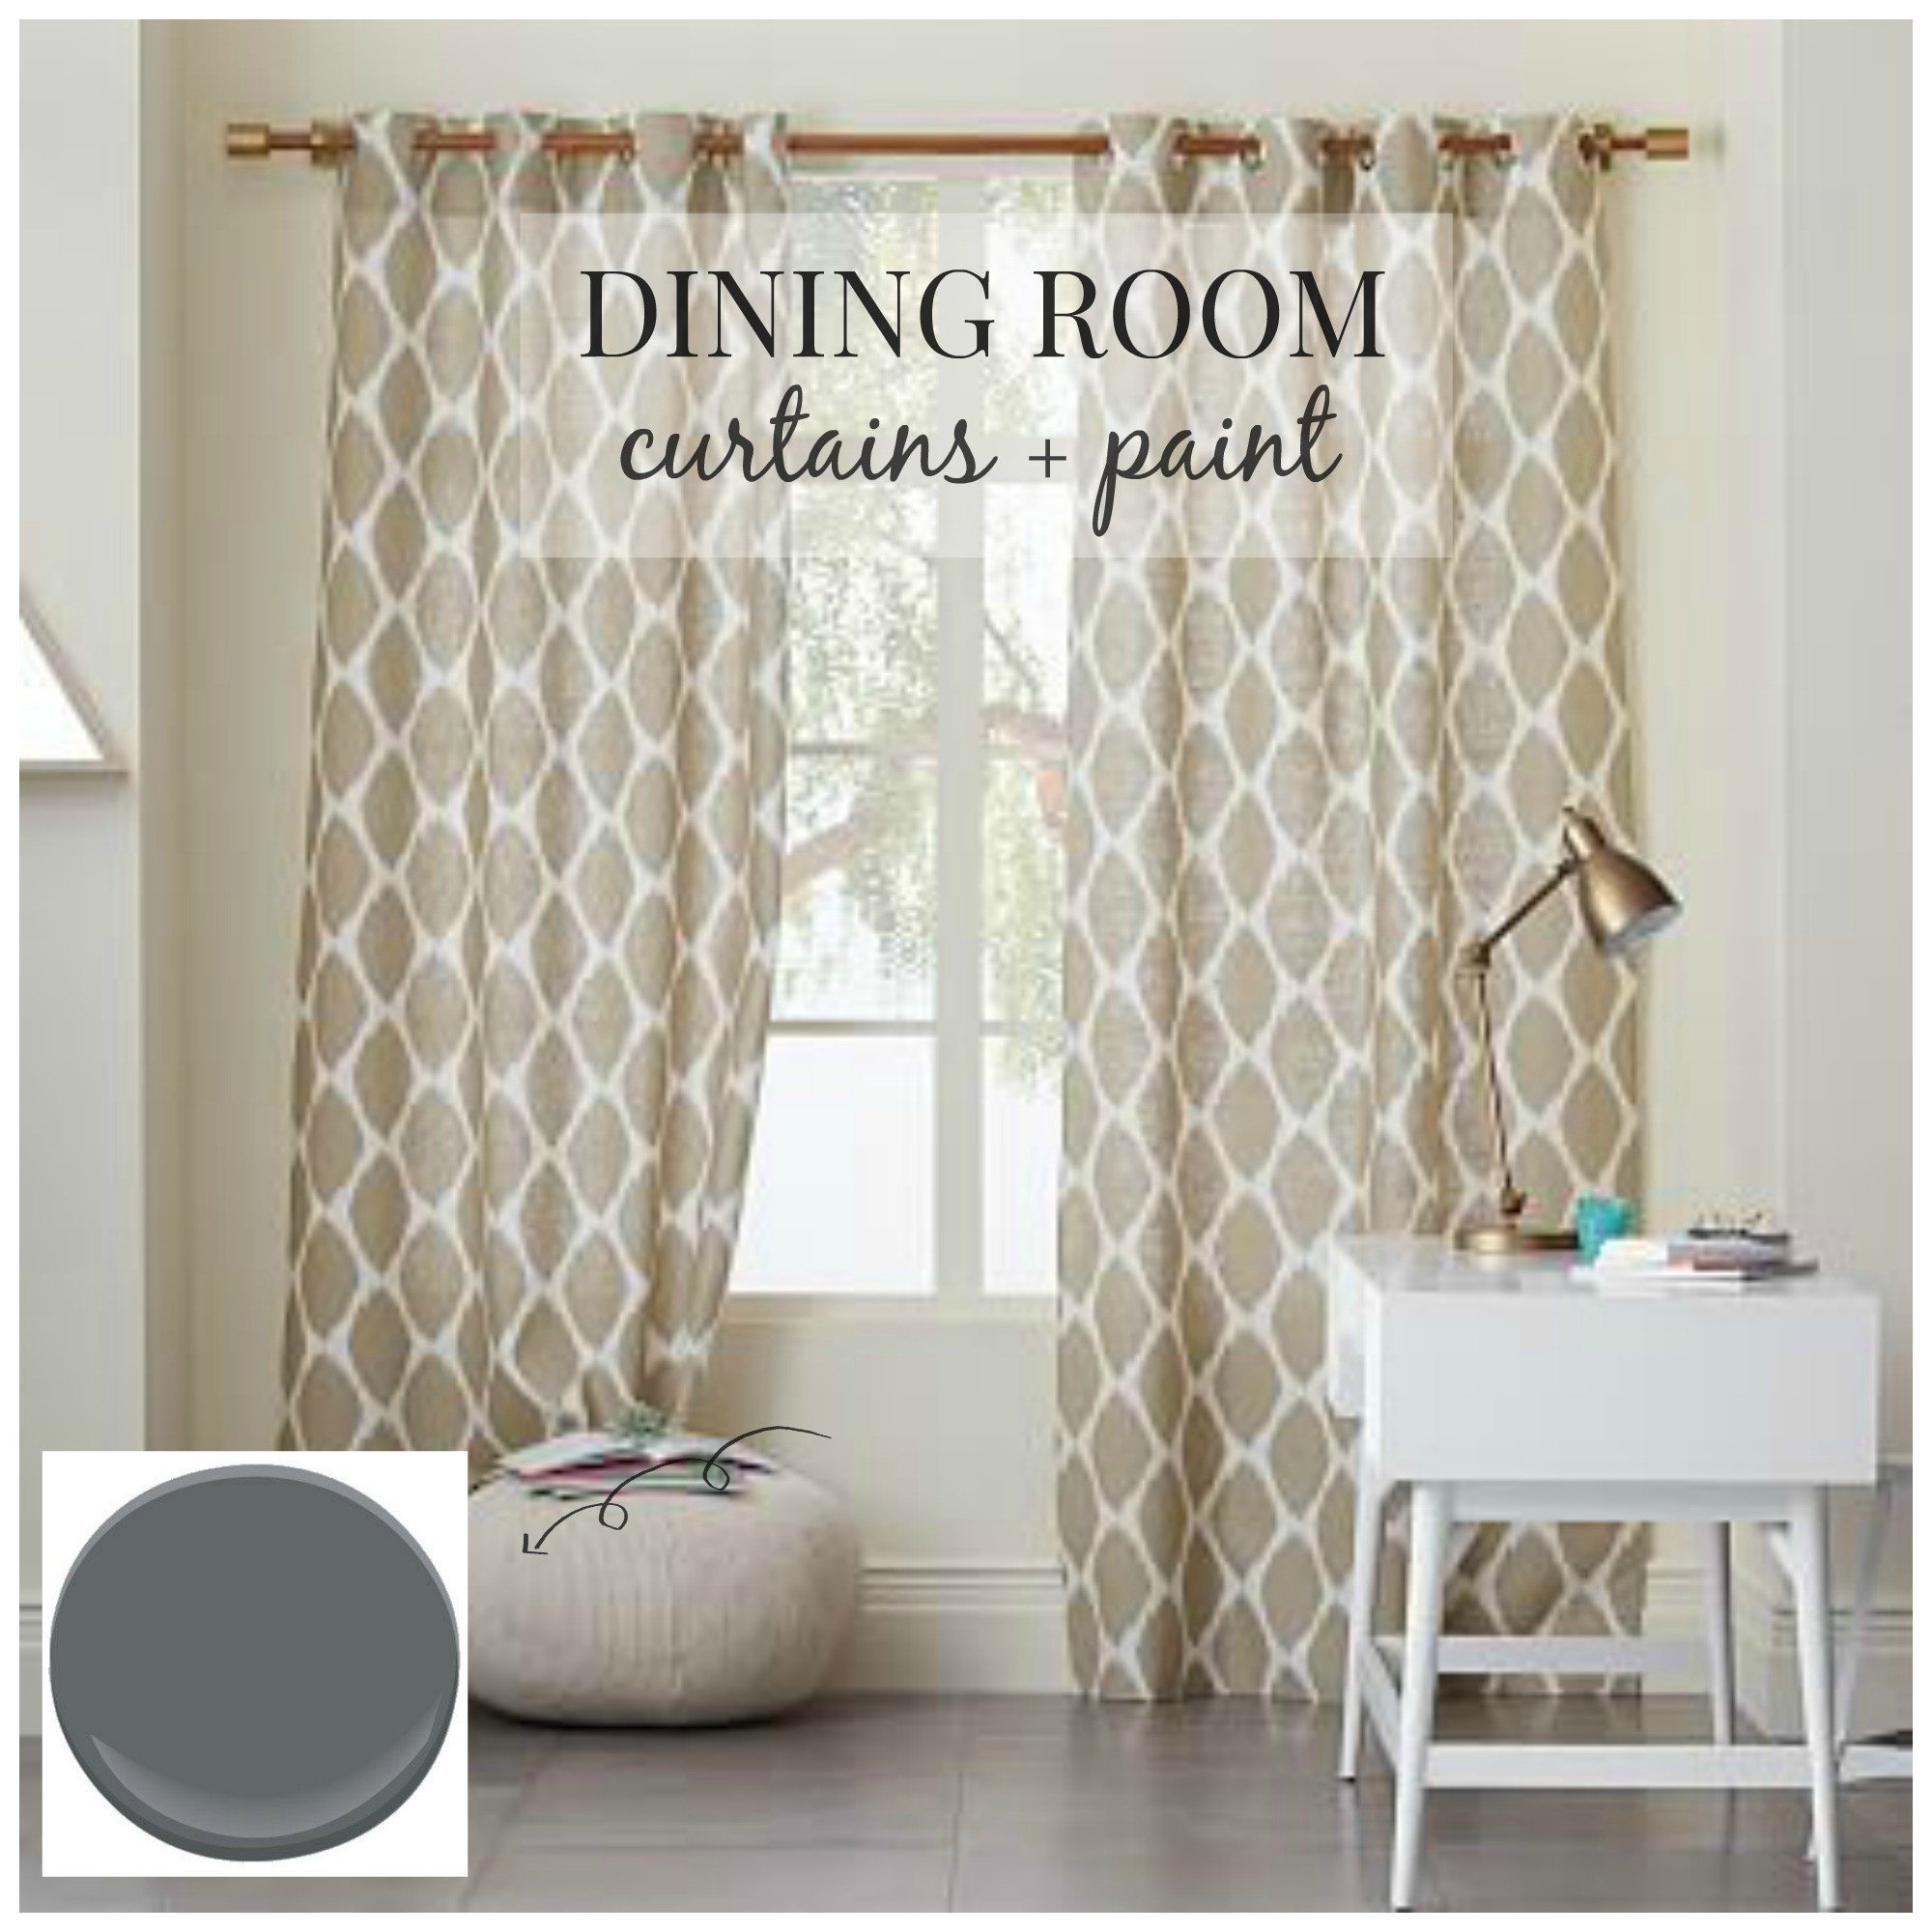 Farmhouse Living Room Curtains Decor Ideas Best Of Dining Room Design Curtains Paint City Farmhouse